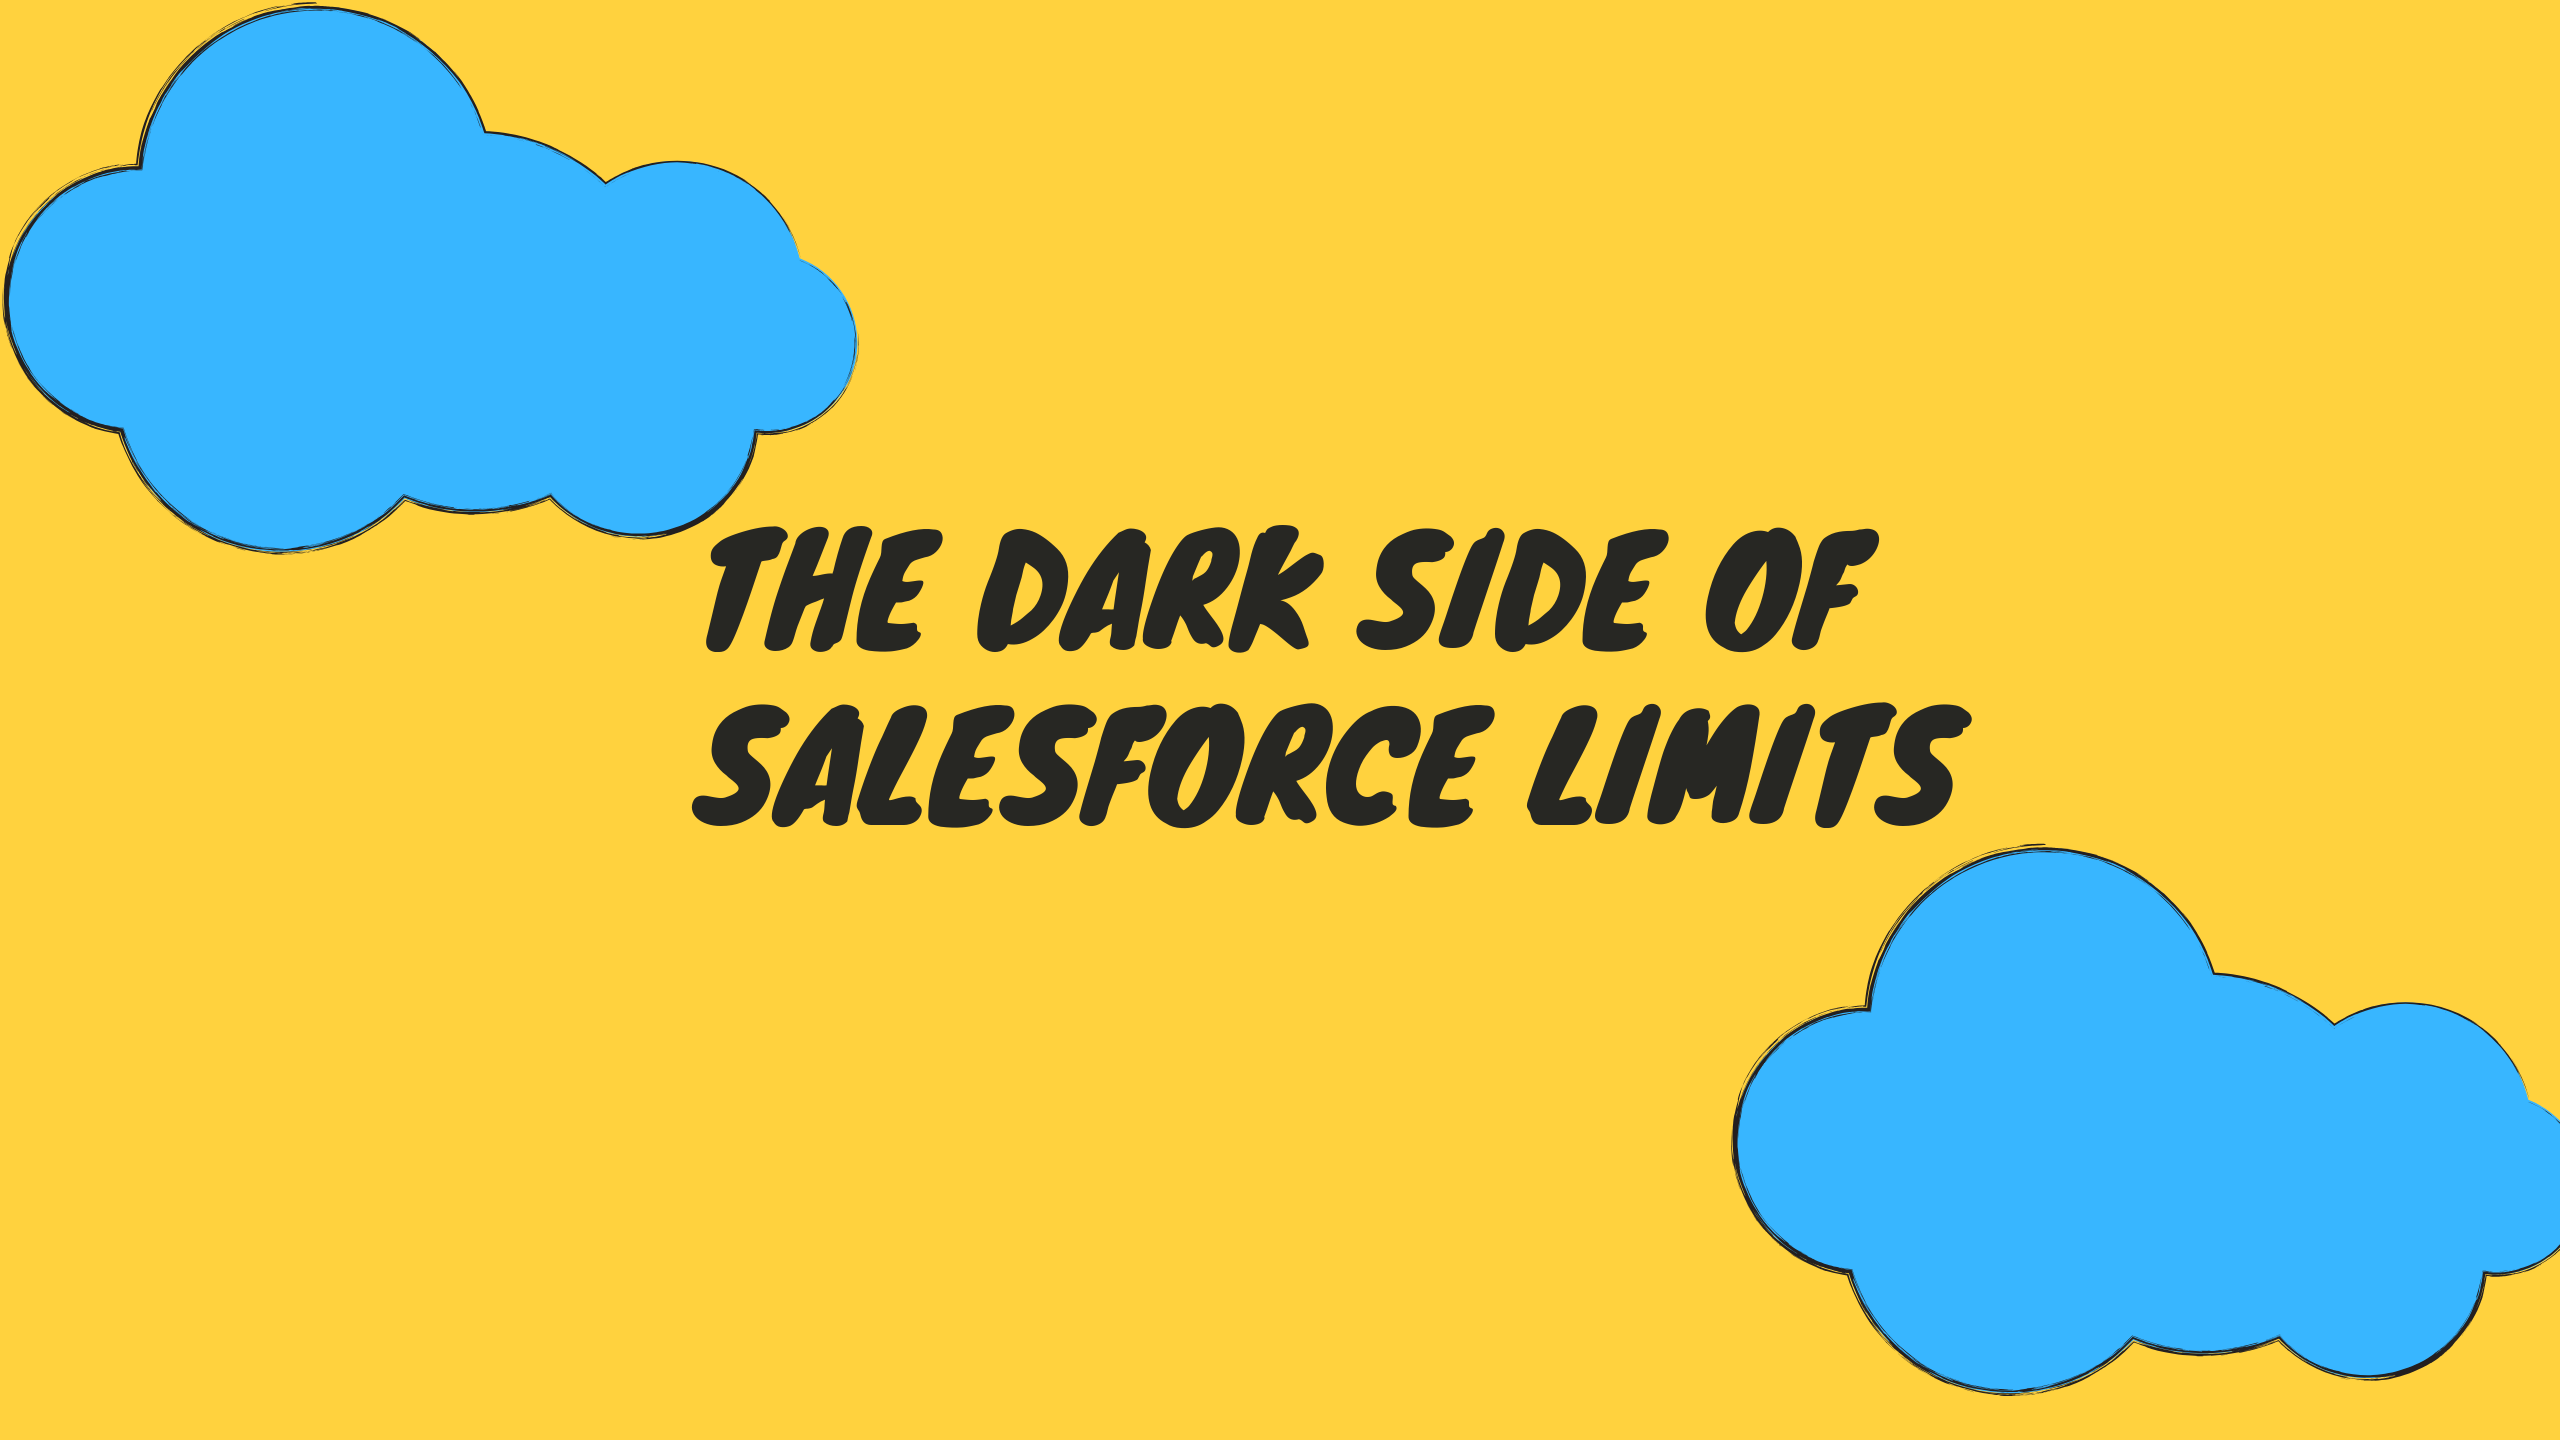 Create a successful online marketplace from scratch - the dark side of Salesforce limits